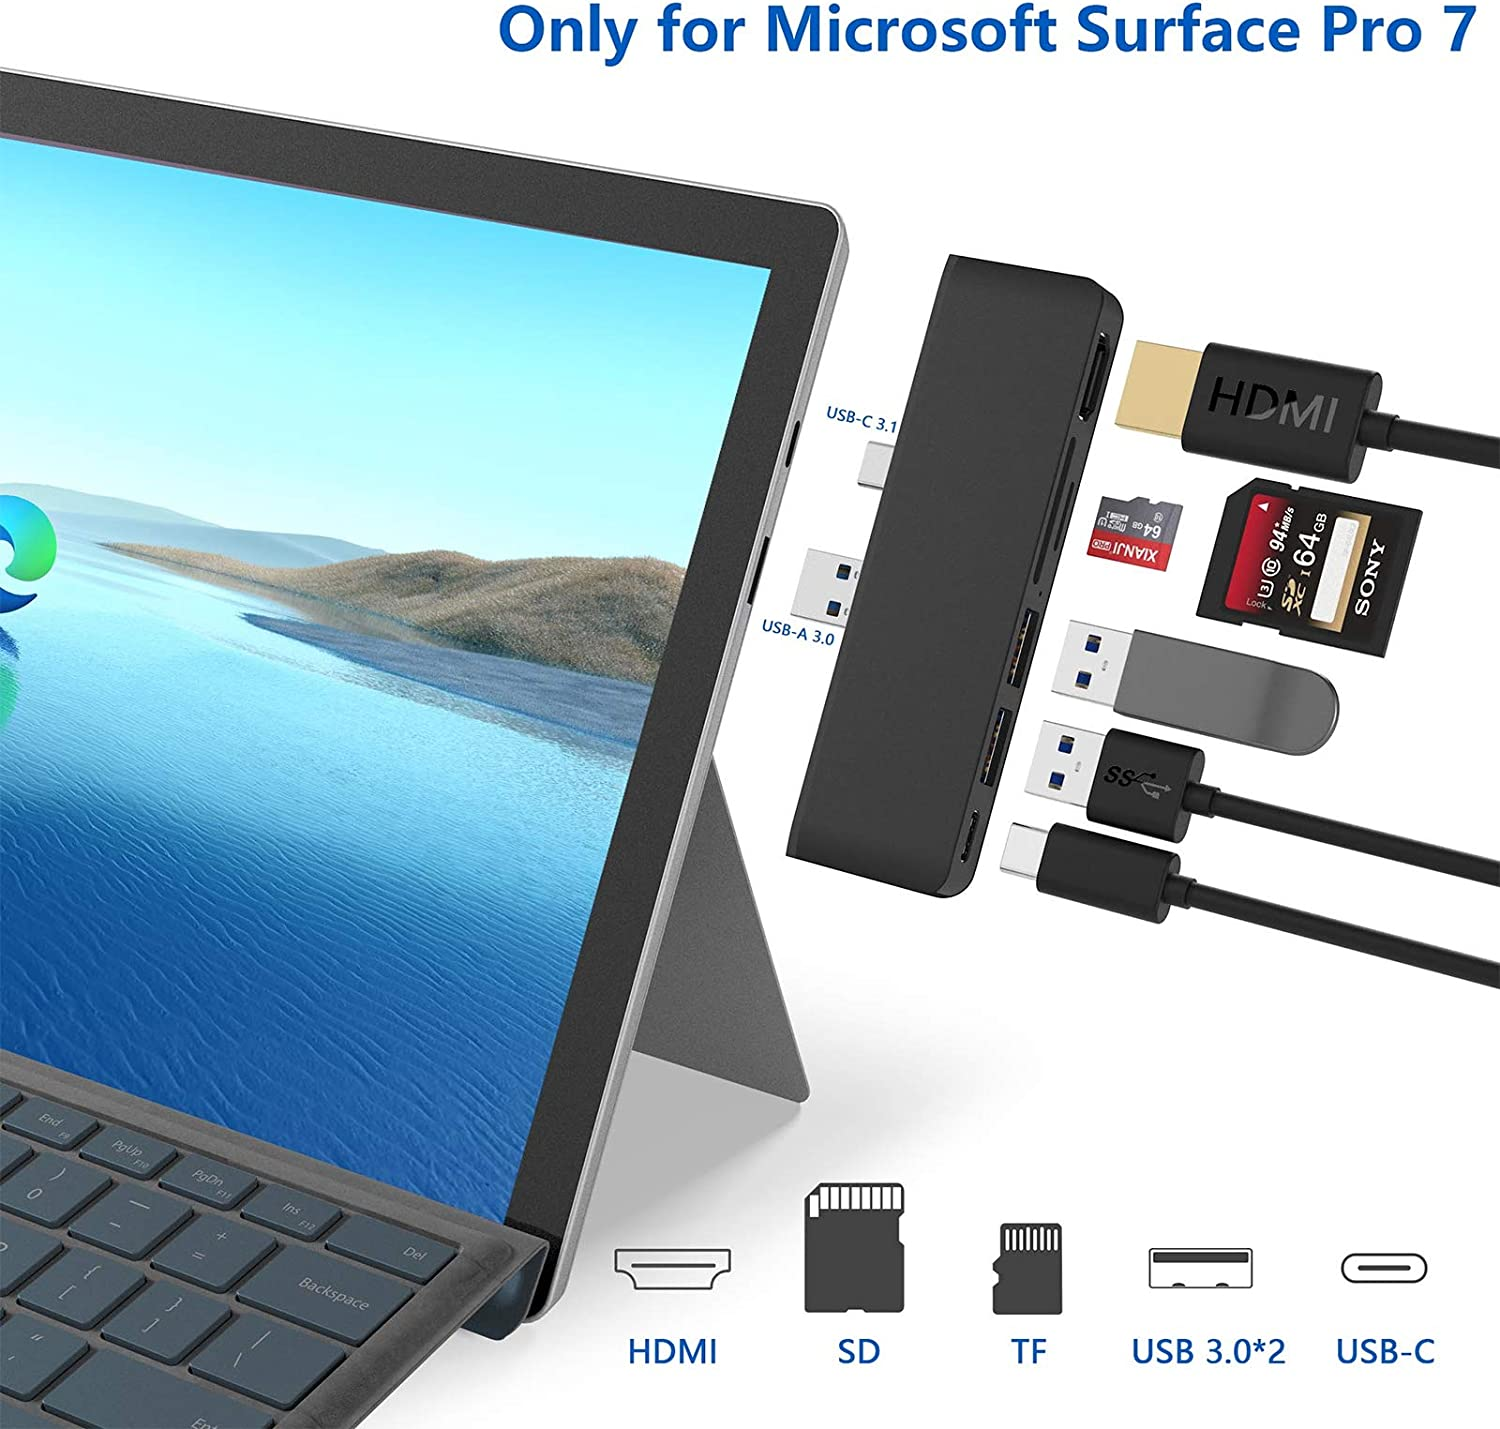 Microsoft Surface Pro 7 Hub,6-in-2 USB C Surface Pro 7 Docking Station with 4K HDMI Adapter+ USB C Port(Audio & Data)+2 USB 3.0 Port +SD/TF Card Reader,Converter Combo Adaptor for Surface Pro 7